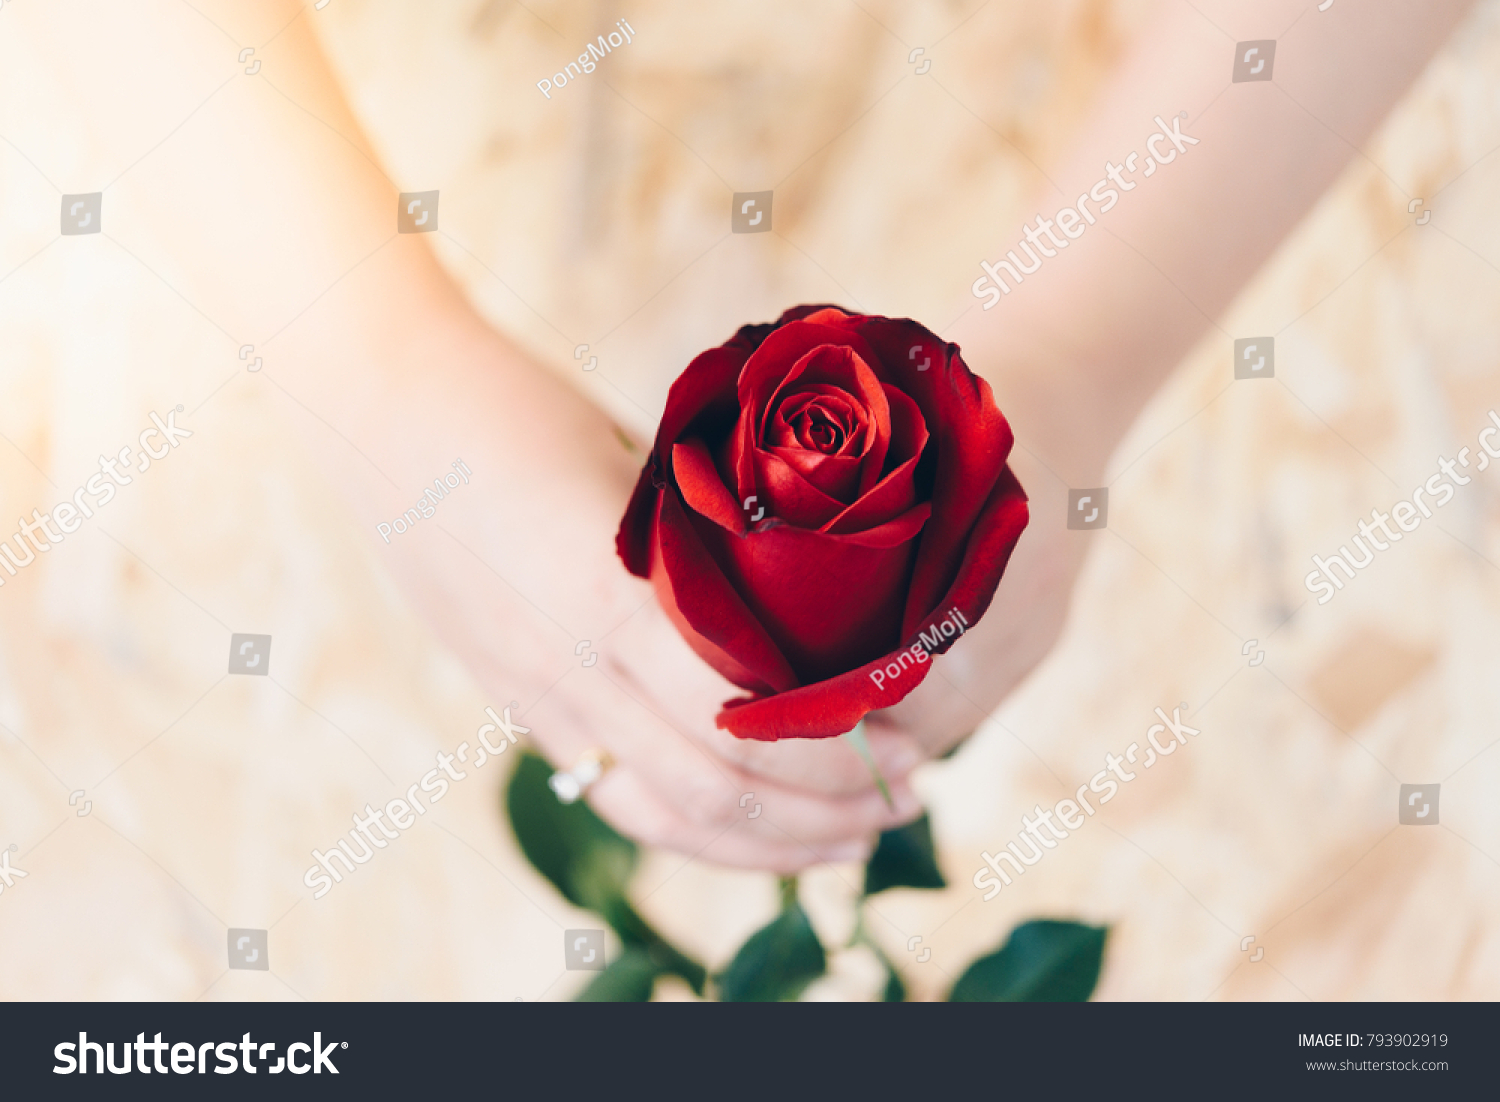 Red rose flower nature beautiful flowers stock photo royalty free red rose flower nature beautiful flowers from the garden and human hand holding red rose flower izmirmasajfo Image collections